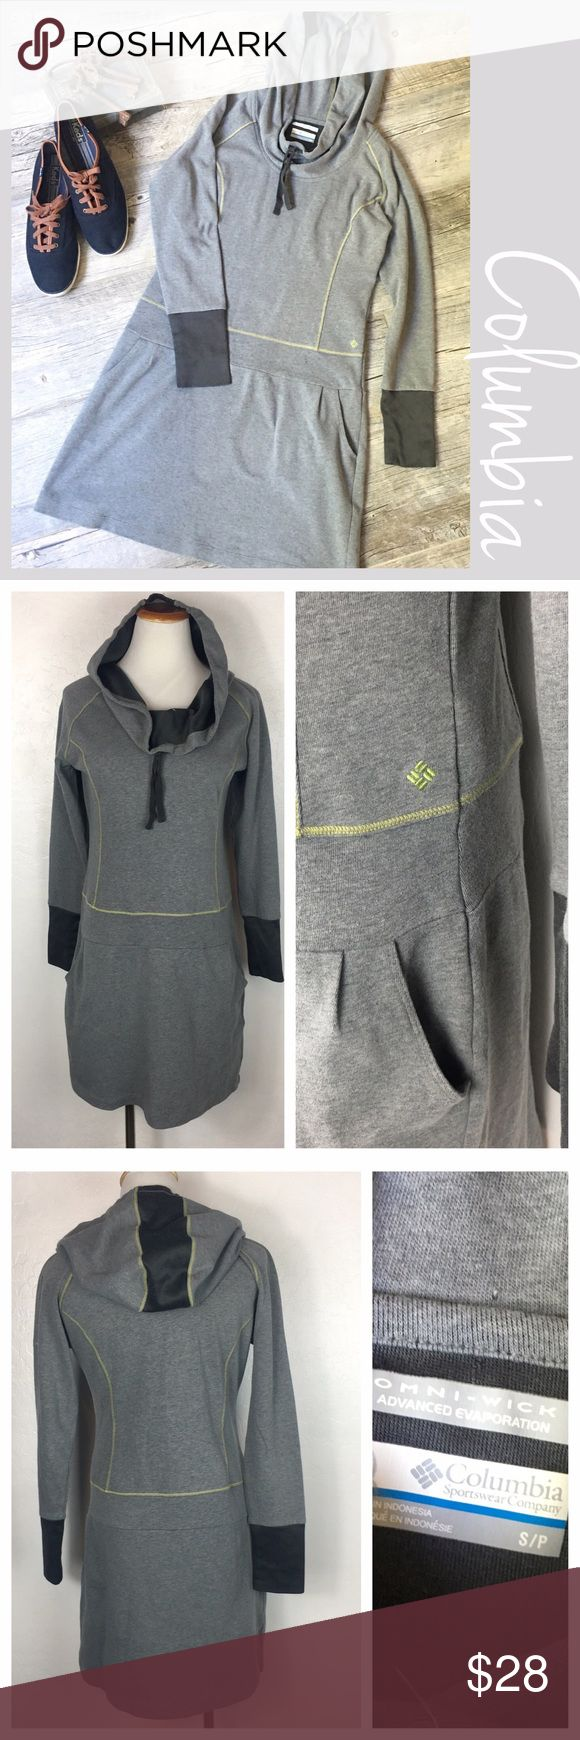 """Columbia Hoodie Dress Columbia Sweatshirt Hoodie Dress. Size Small/P with Drop waist and front pockets. Omni Wick. Preowned  Measurements  Bust 18"""" Length 34"""" Sleeves 25"""". Bundle and Save. Suggested User. No Trades. Fast Shipper Columbia Dresses"""